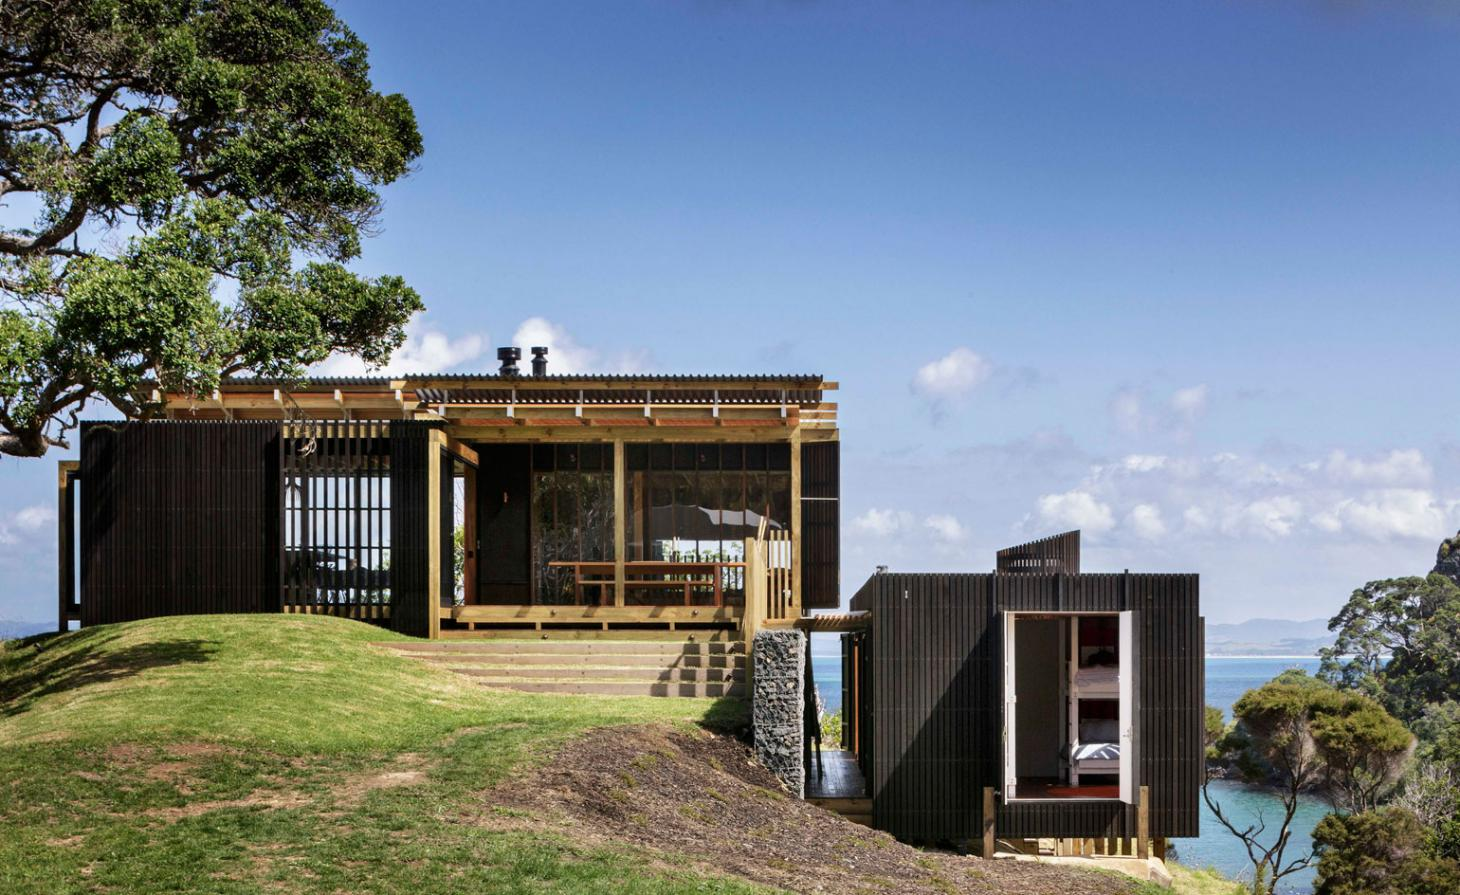 Herbst Architects' sensitive retreat invites New Zealand's great outdoors inside